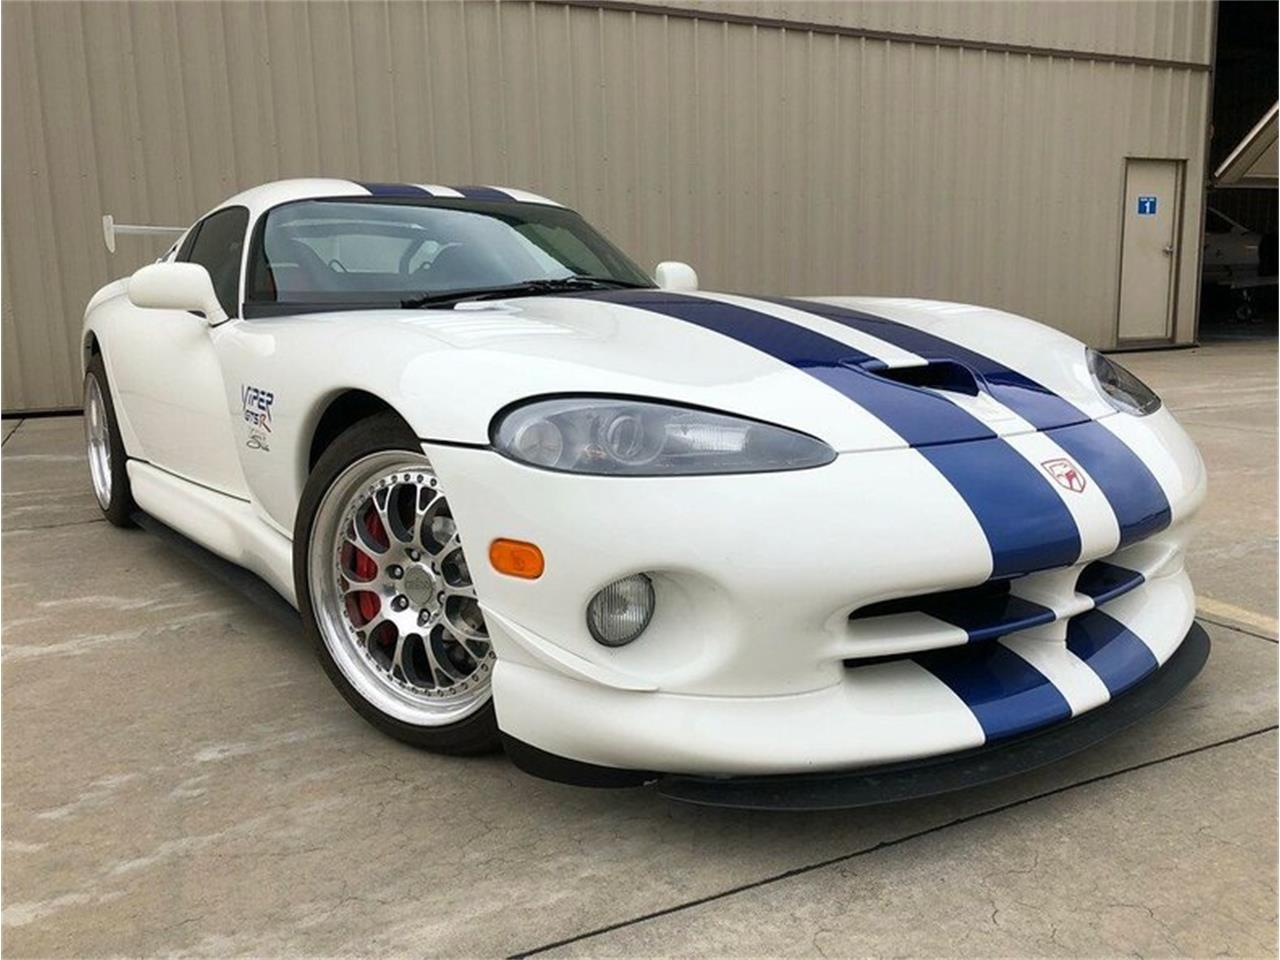 1998 Dodge Viper for sale in Lincoln, NE – photo 4